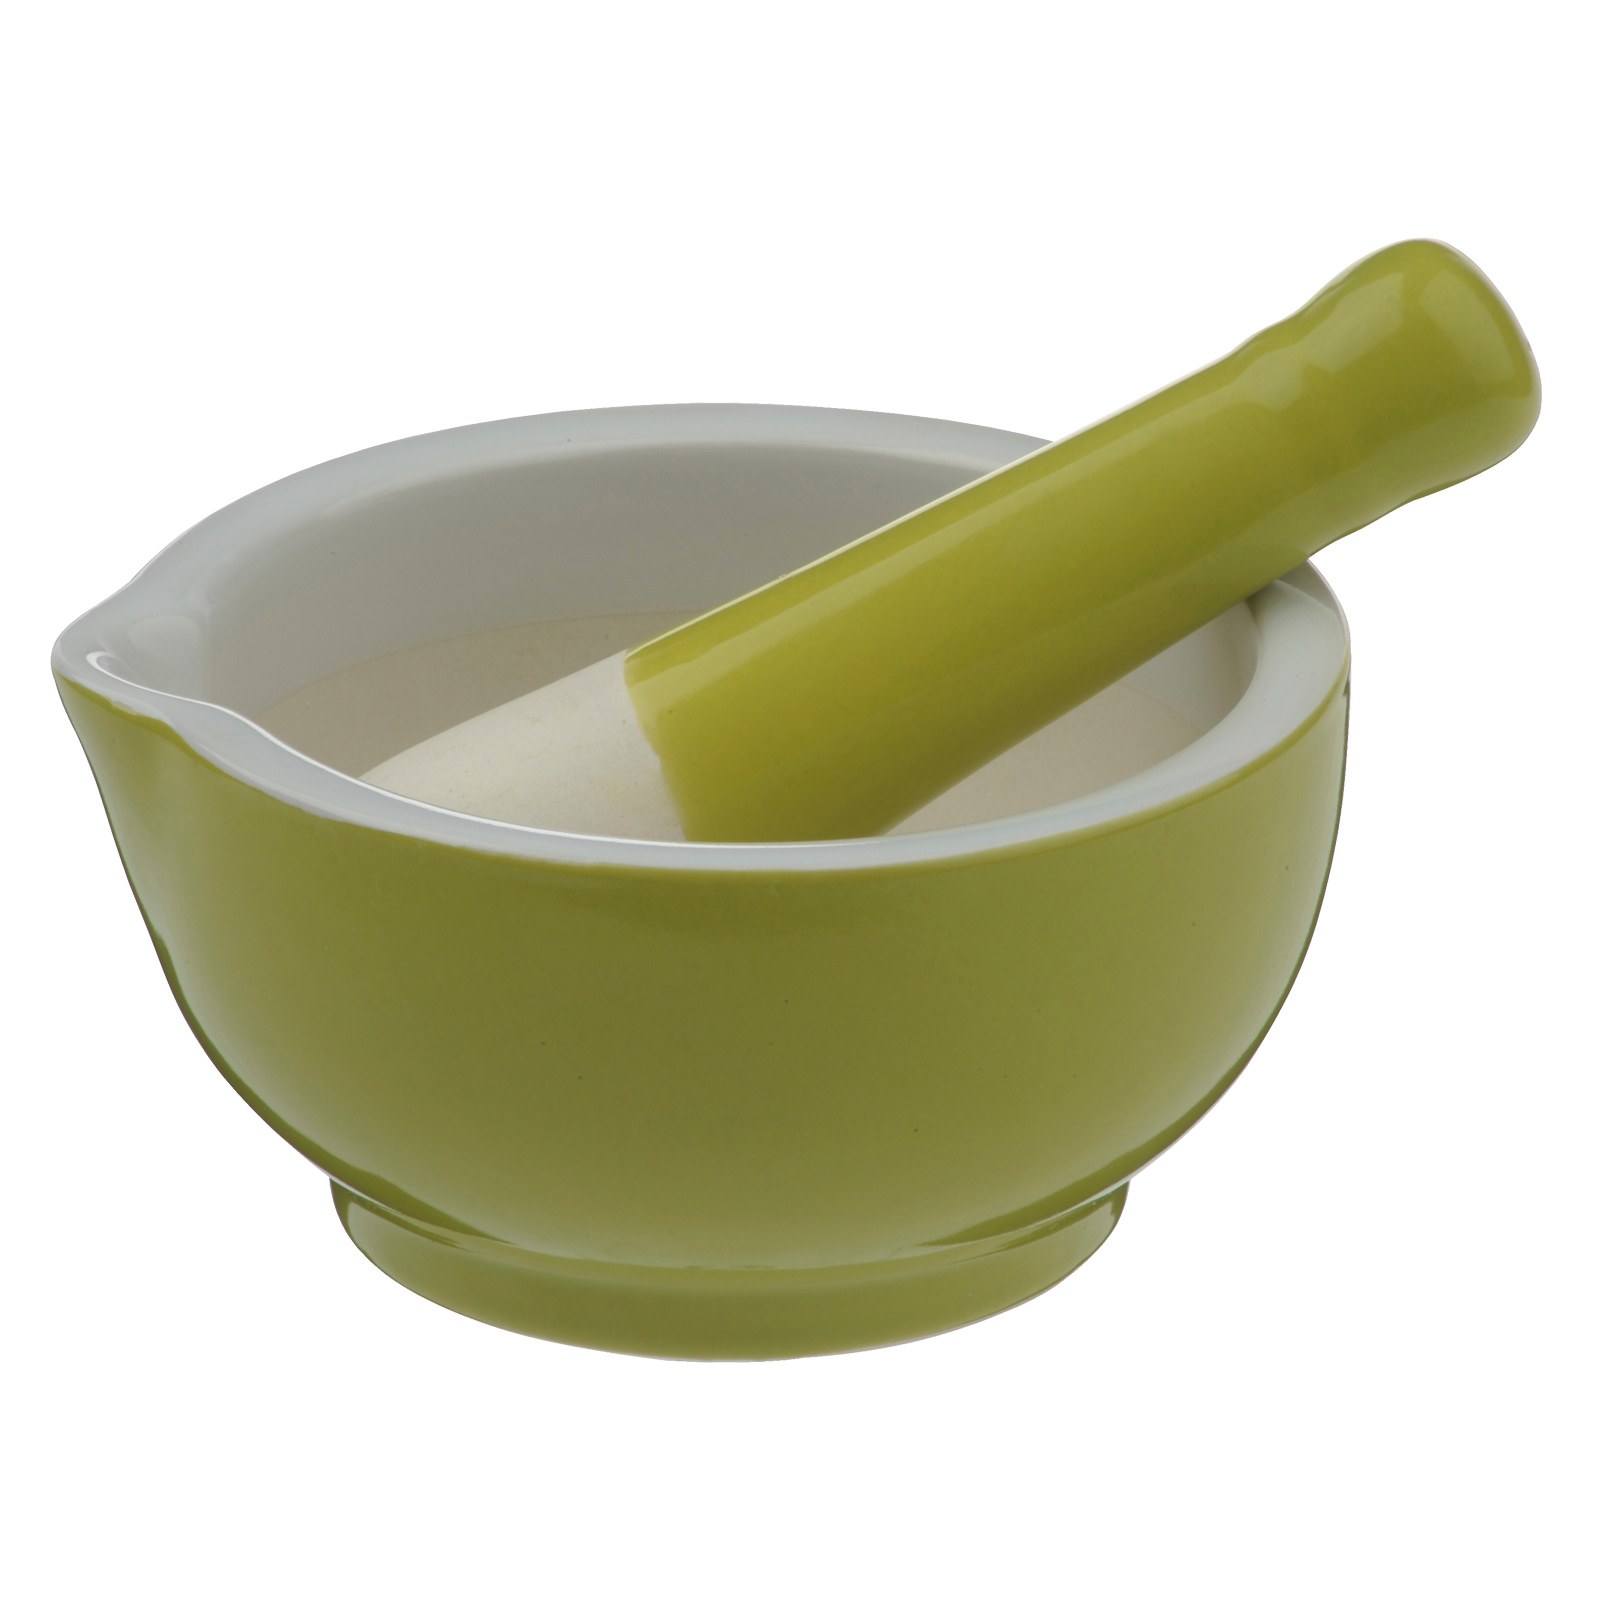 SCOOP! Mortar & Pestle Lemon Grass by BIA